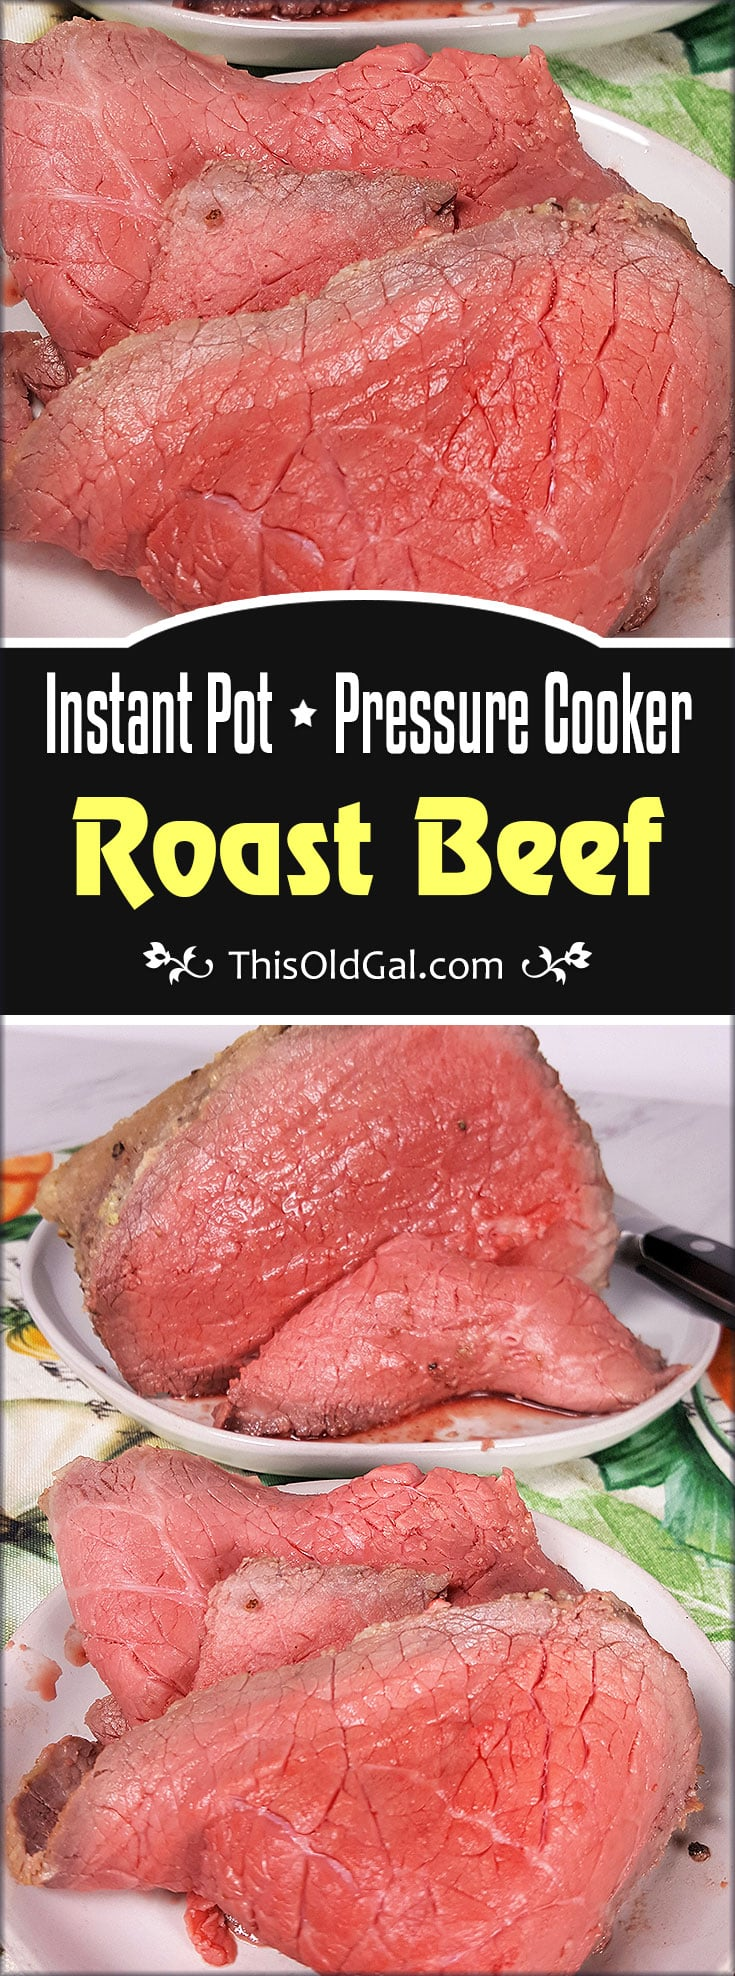 Deli Style Instant Pot and Pressure Cooker Roast Beef